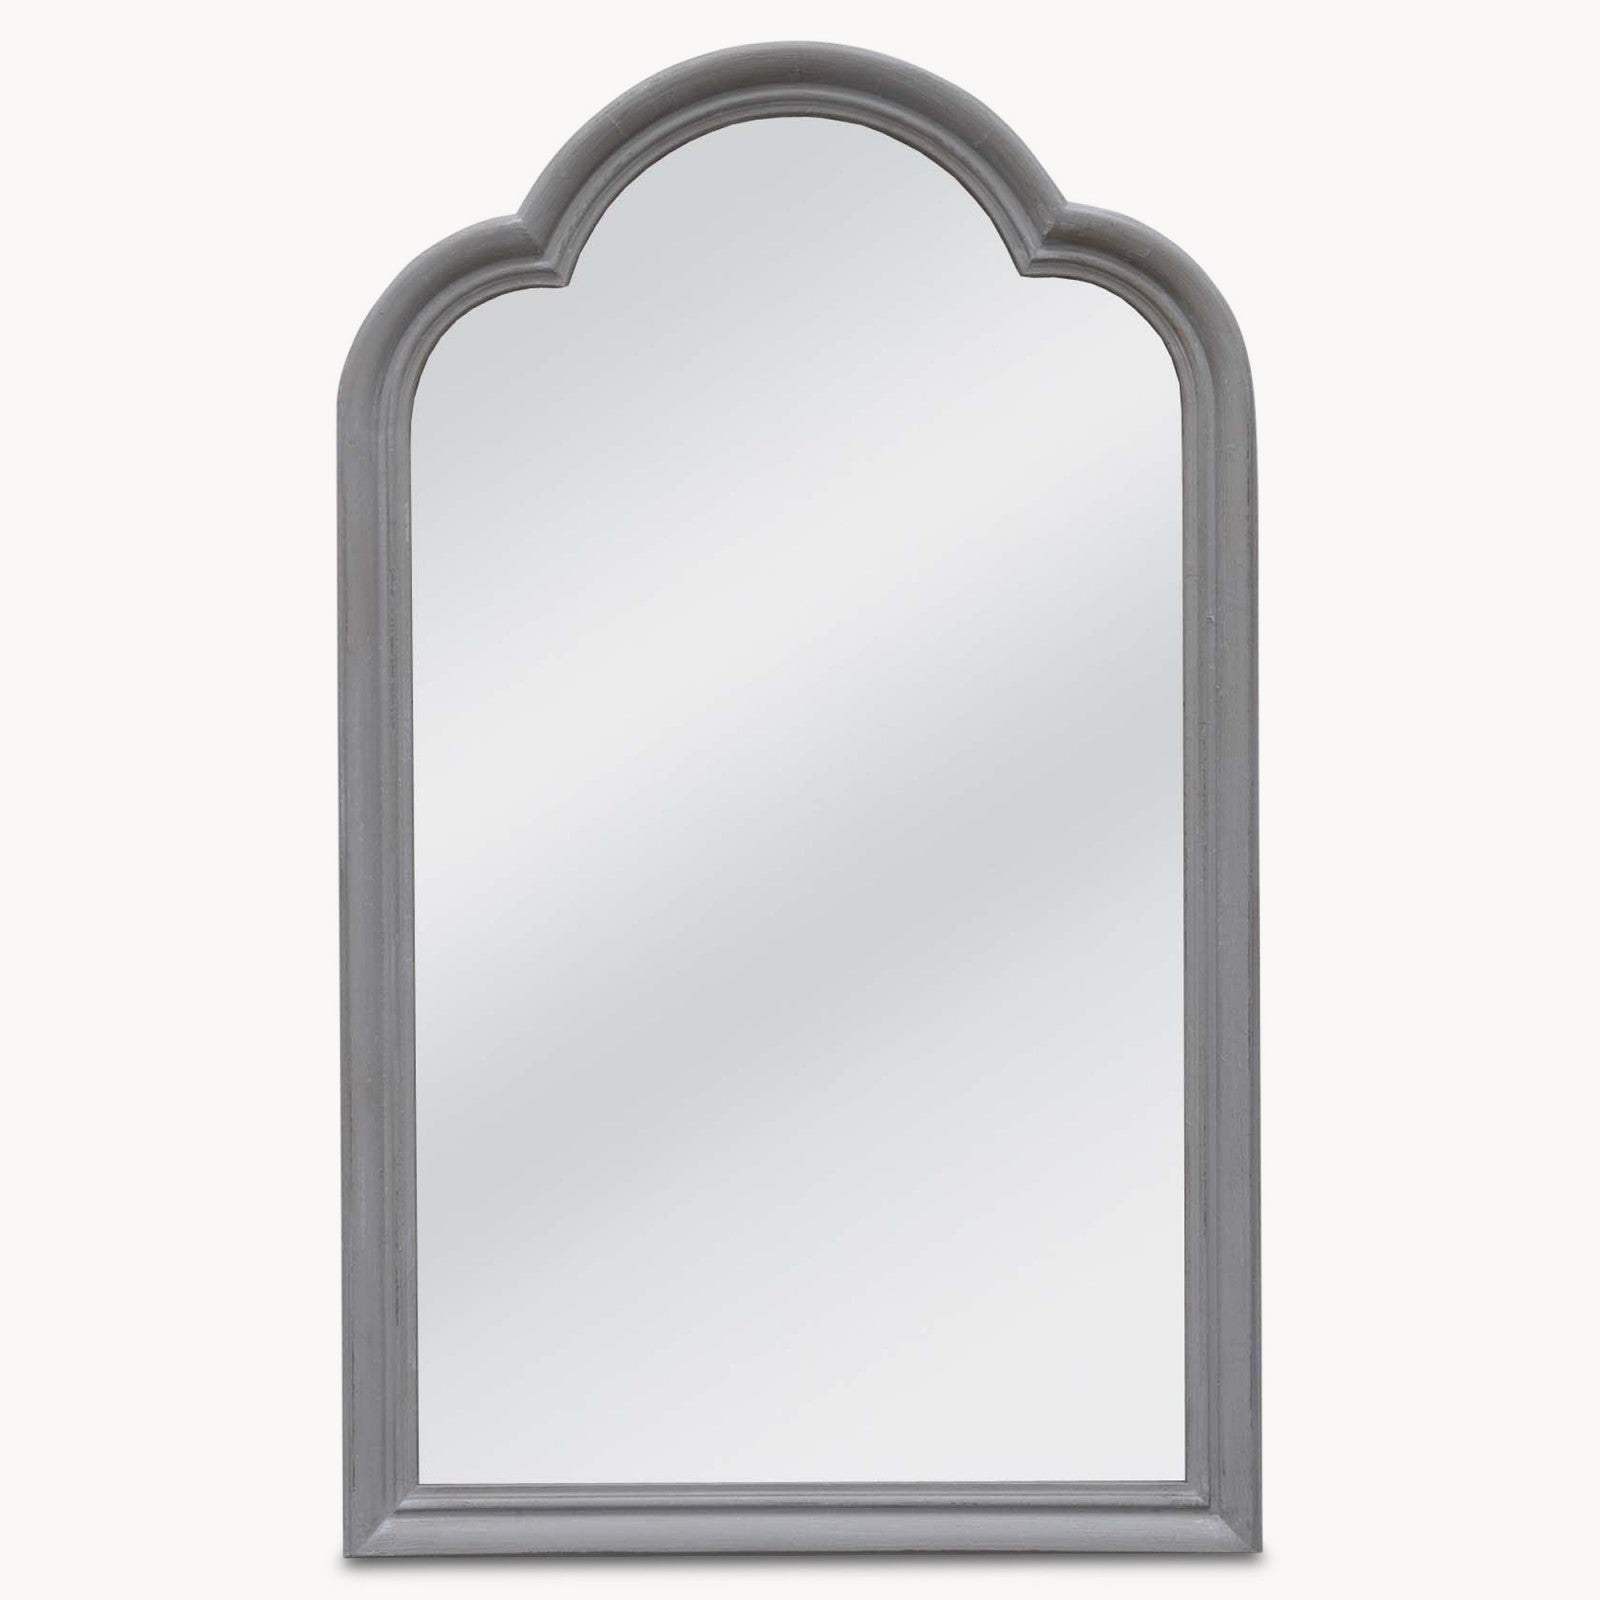 WILTON GREY ROUNDED MIRROR